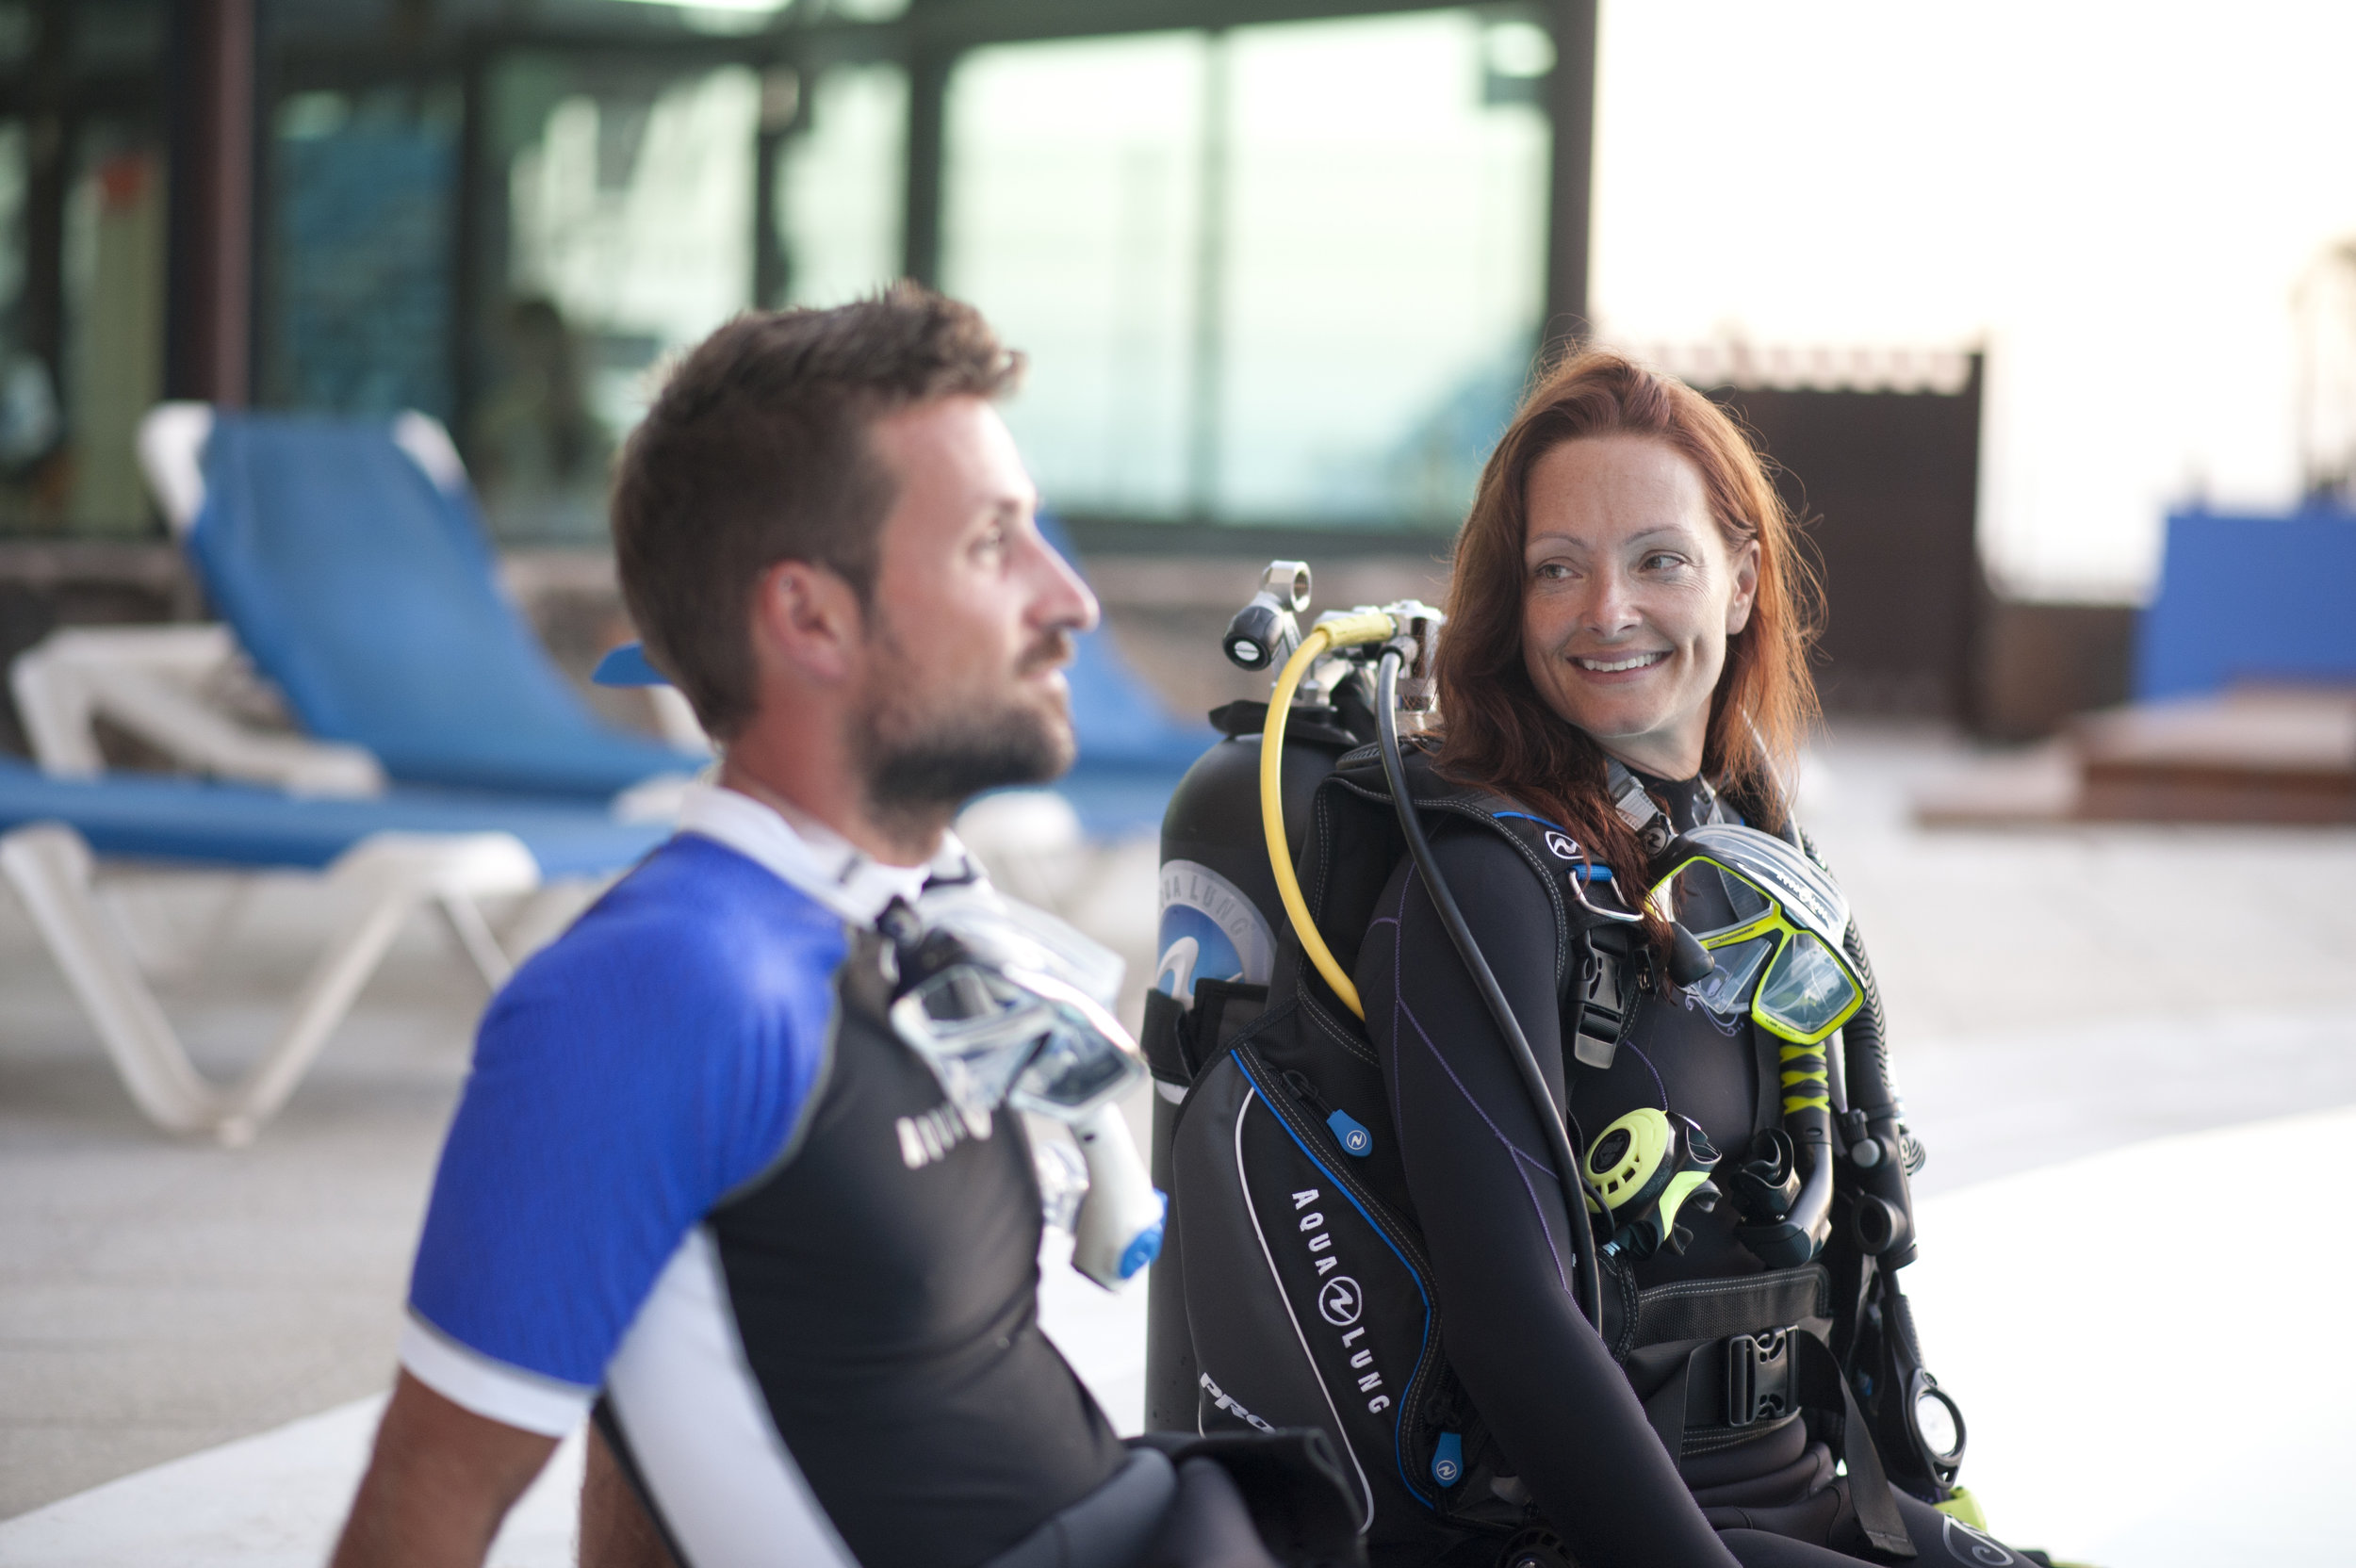 To review & refresh your scuba knowledge and skills to prepare you for your next diving adventure -